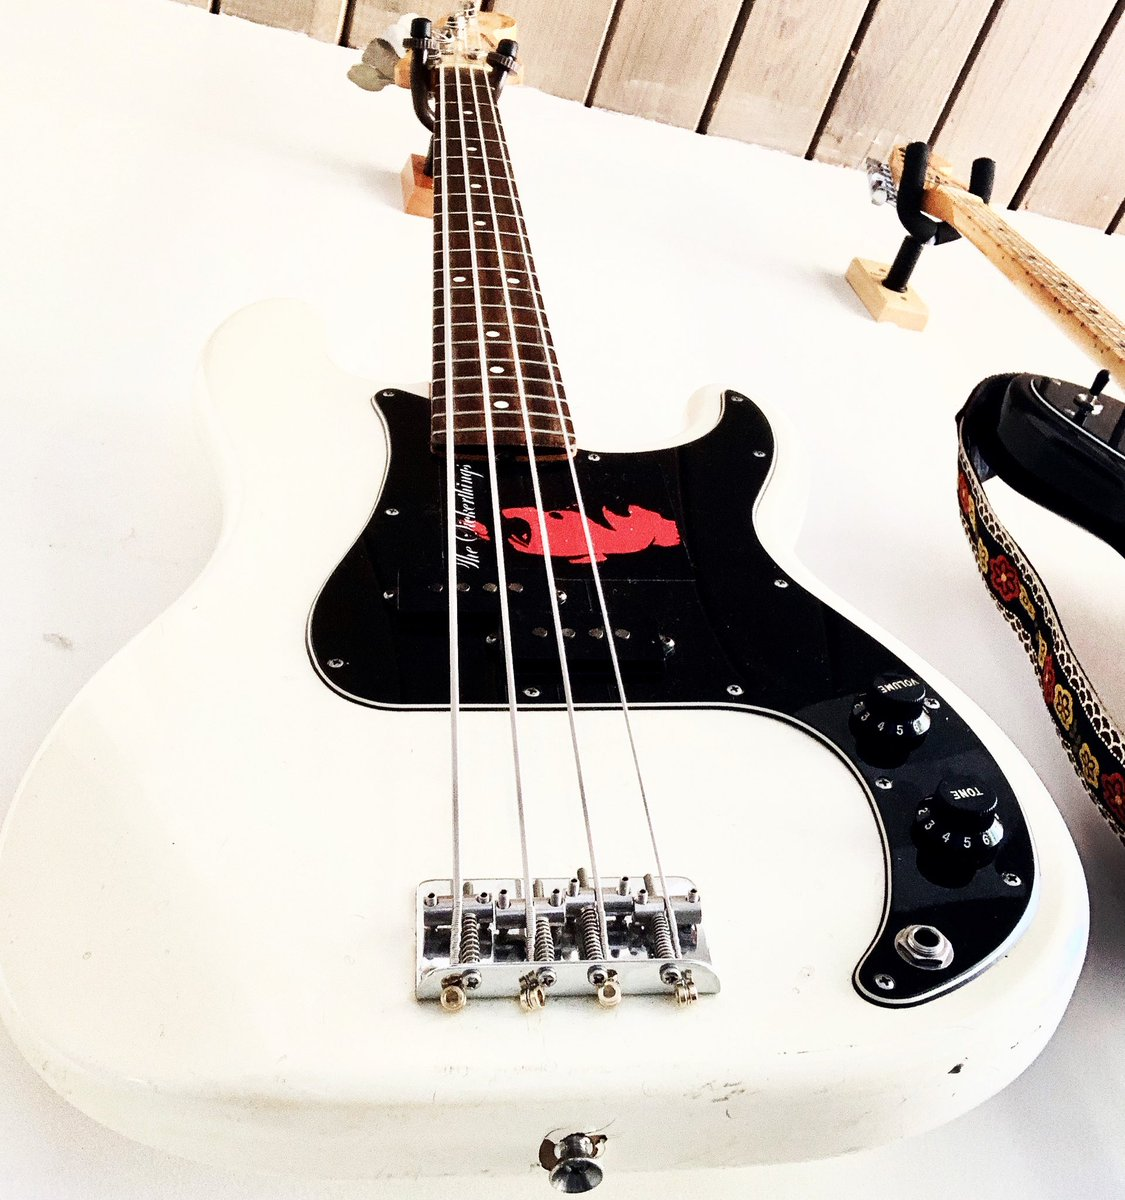 Working on new songs and wanted to share the view from my work table. @fender #fender #fenderpbass #vintageguitars pic.twitter.com/Y4v0zx52uA